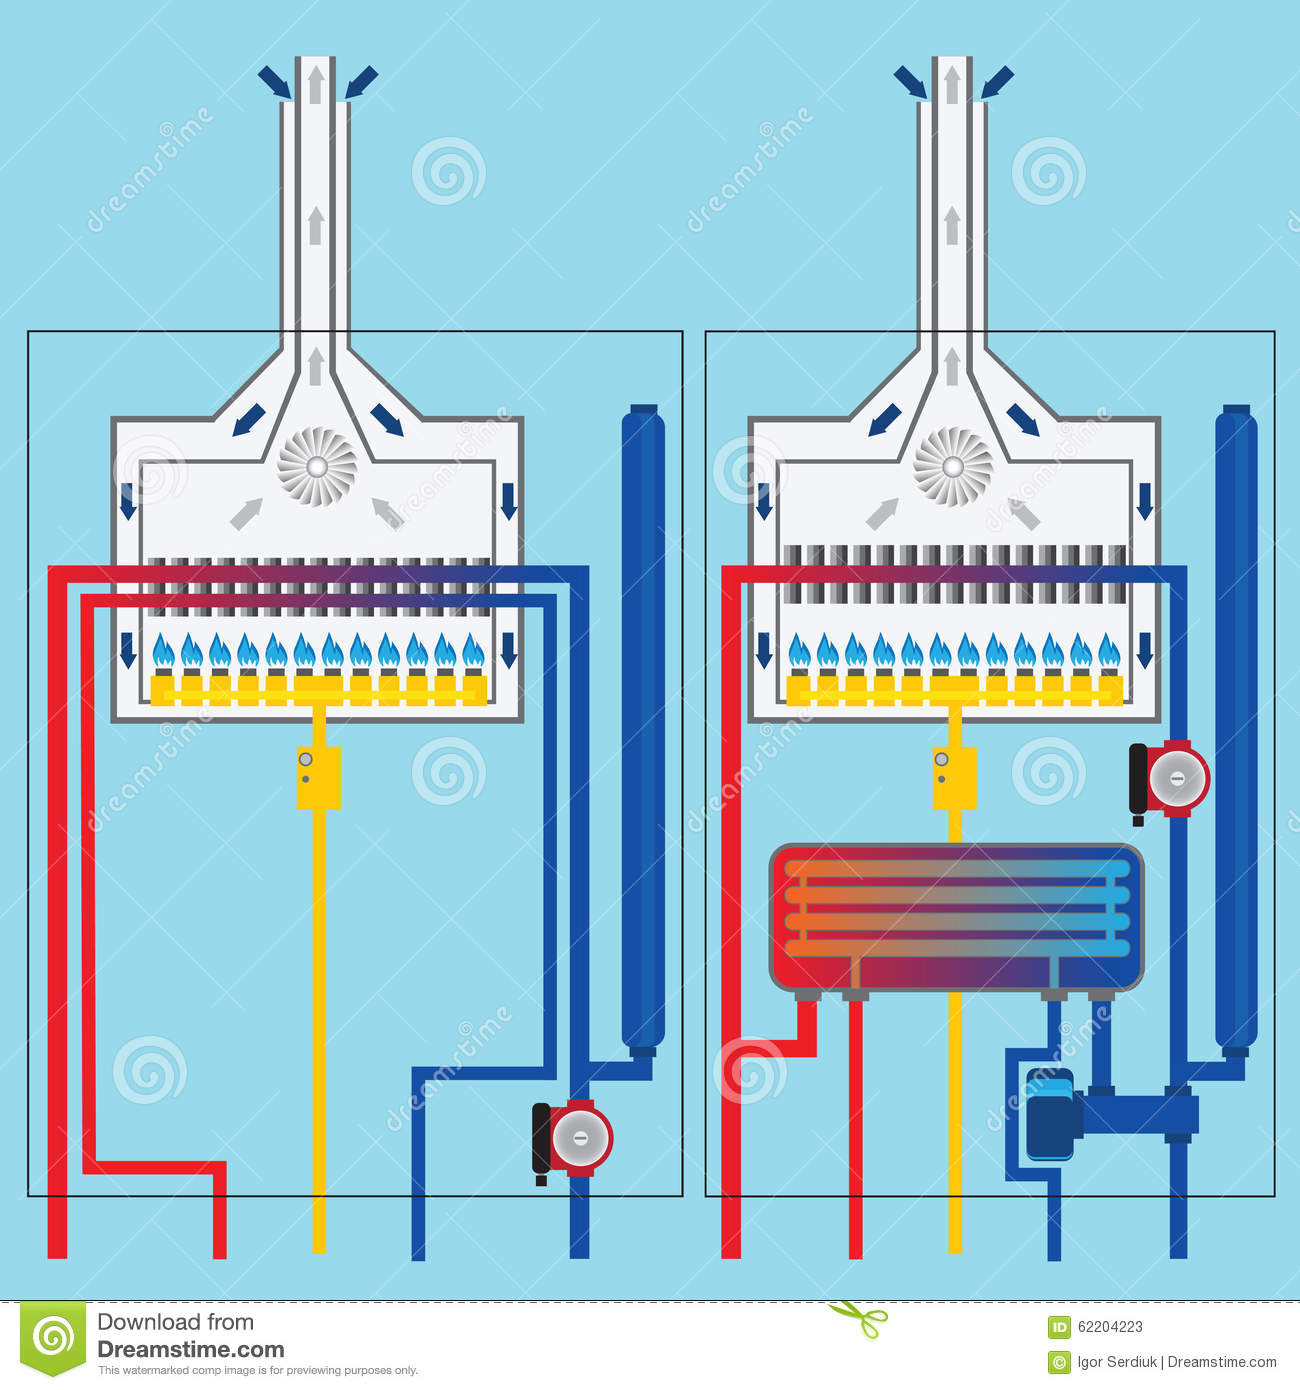 Gas Boilers With Heat Exchanger. Stock Vector - Illustration of ...